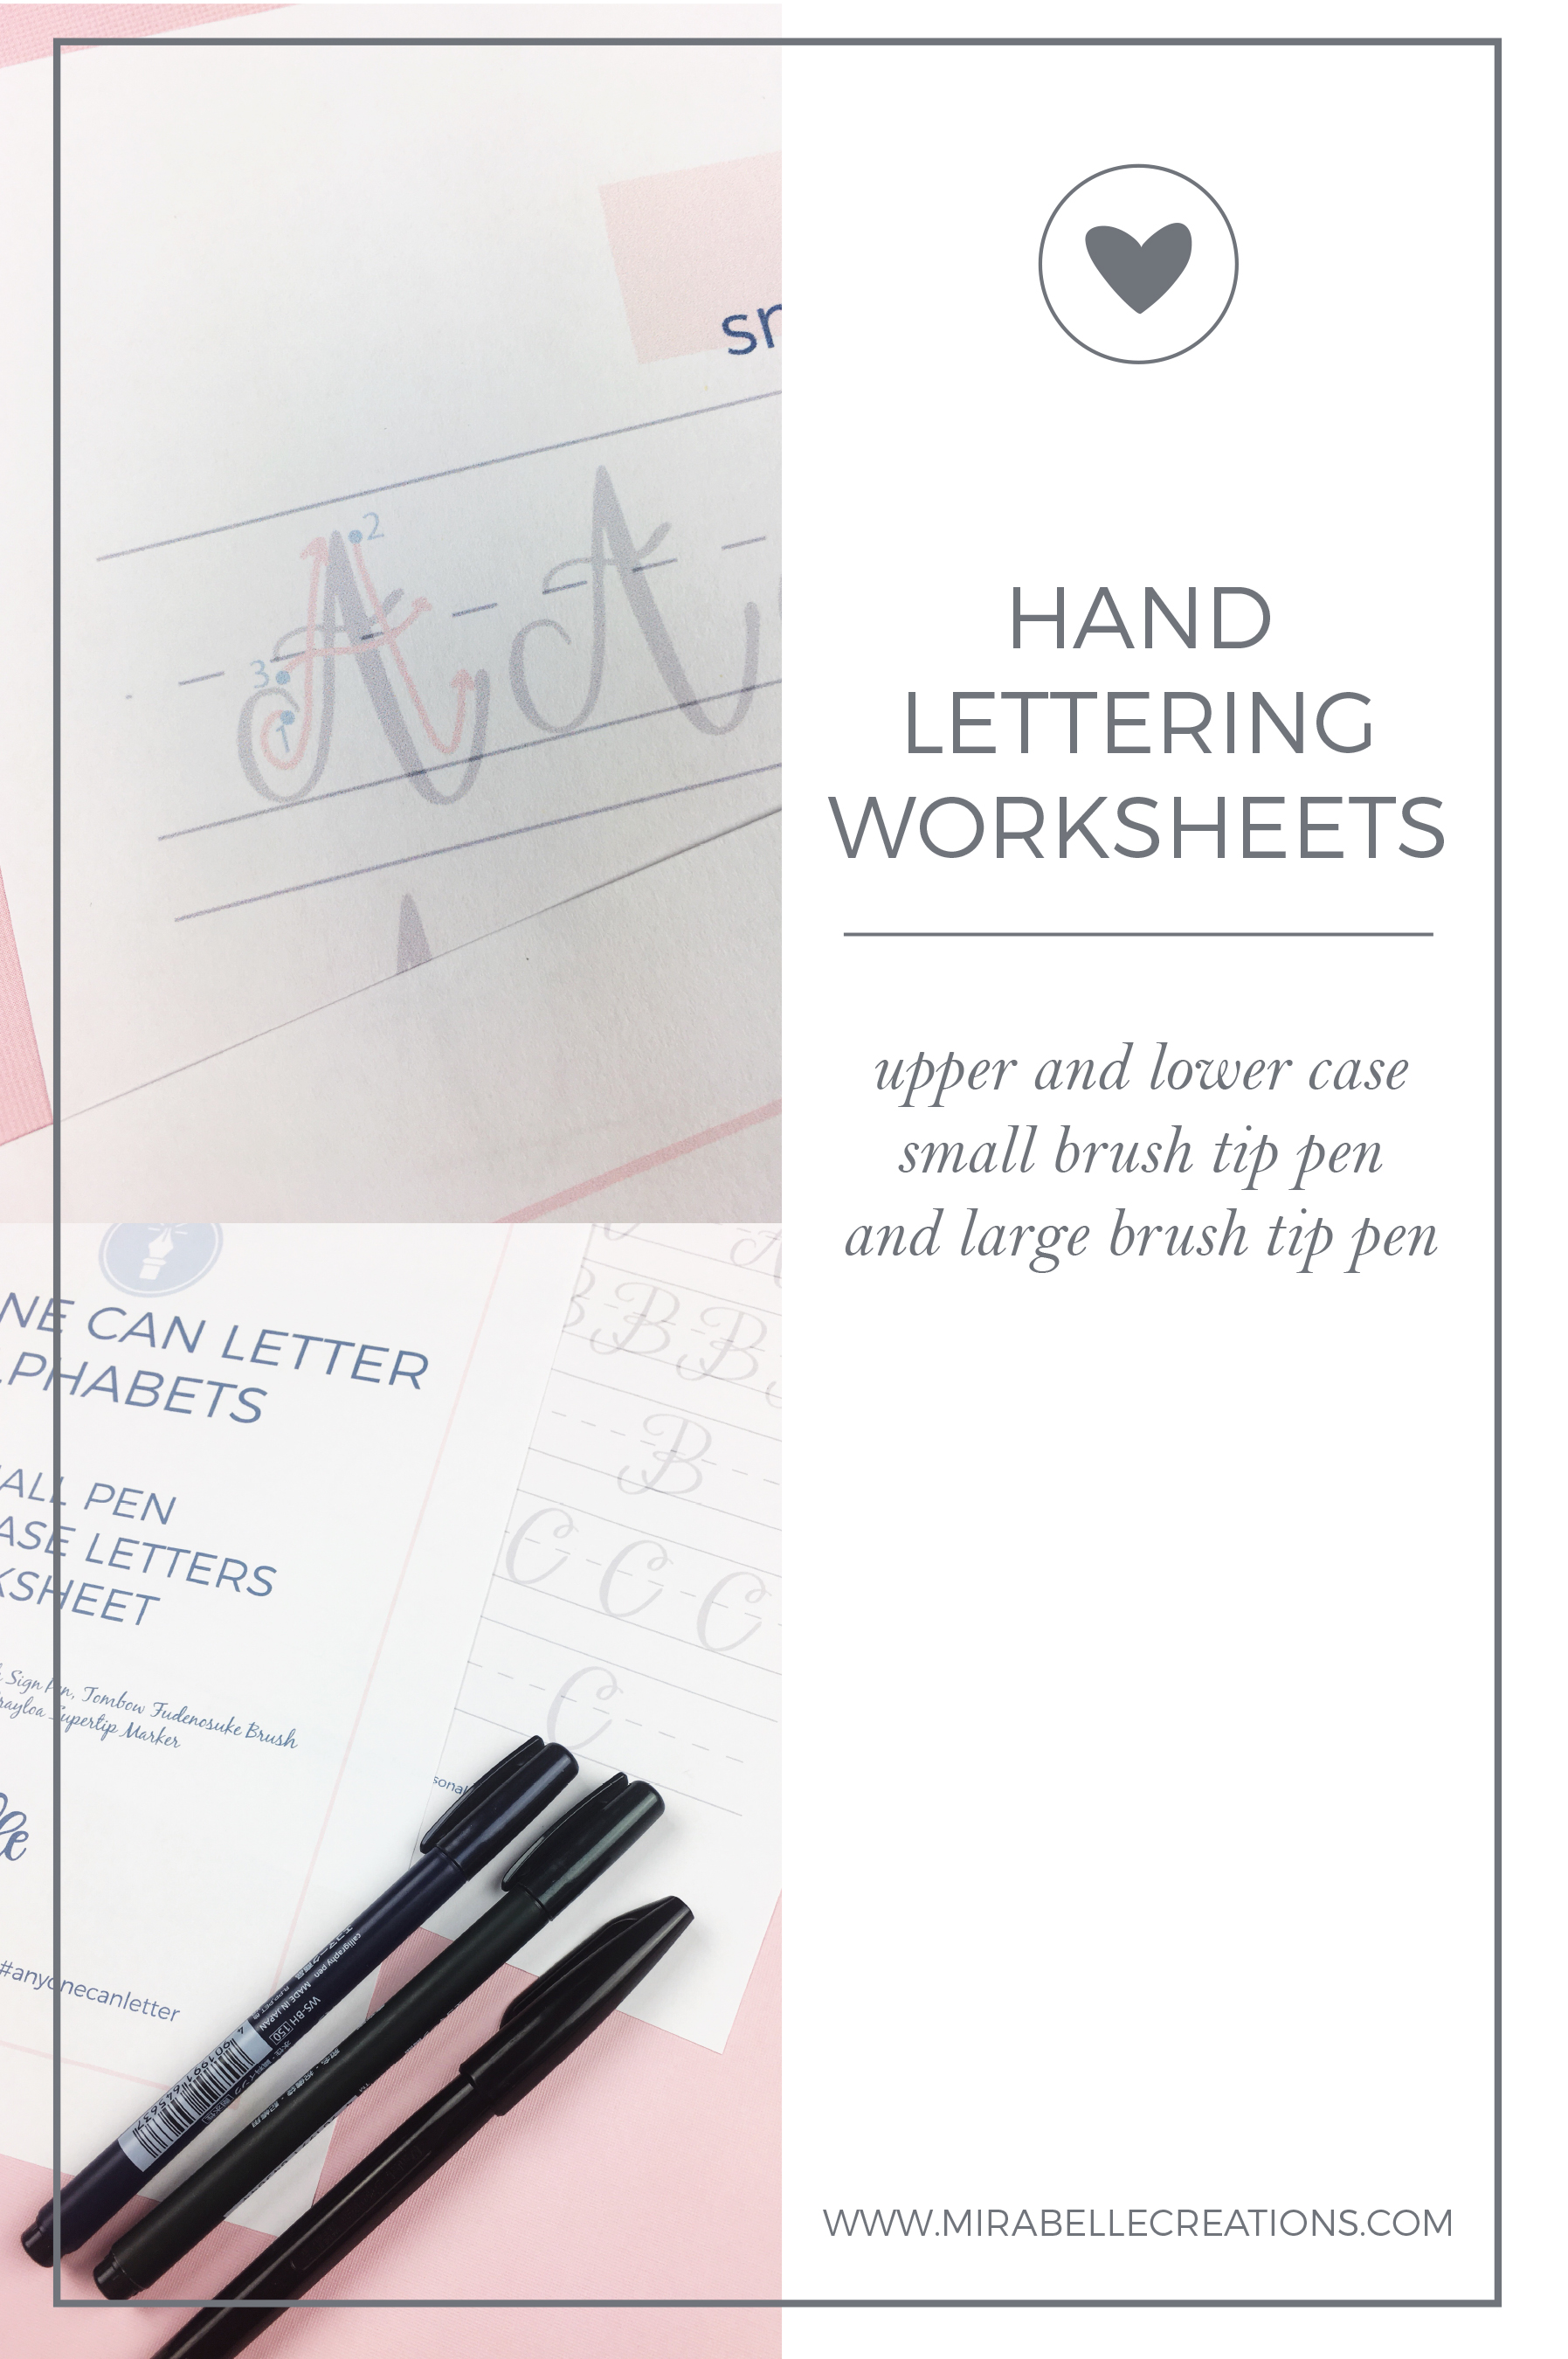 Hand Lettering Worksheets now available in the Shop